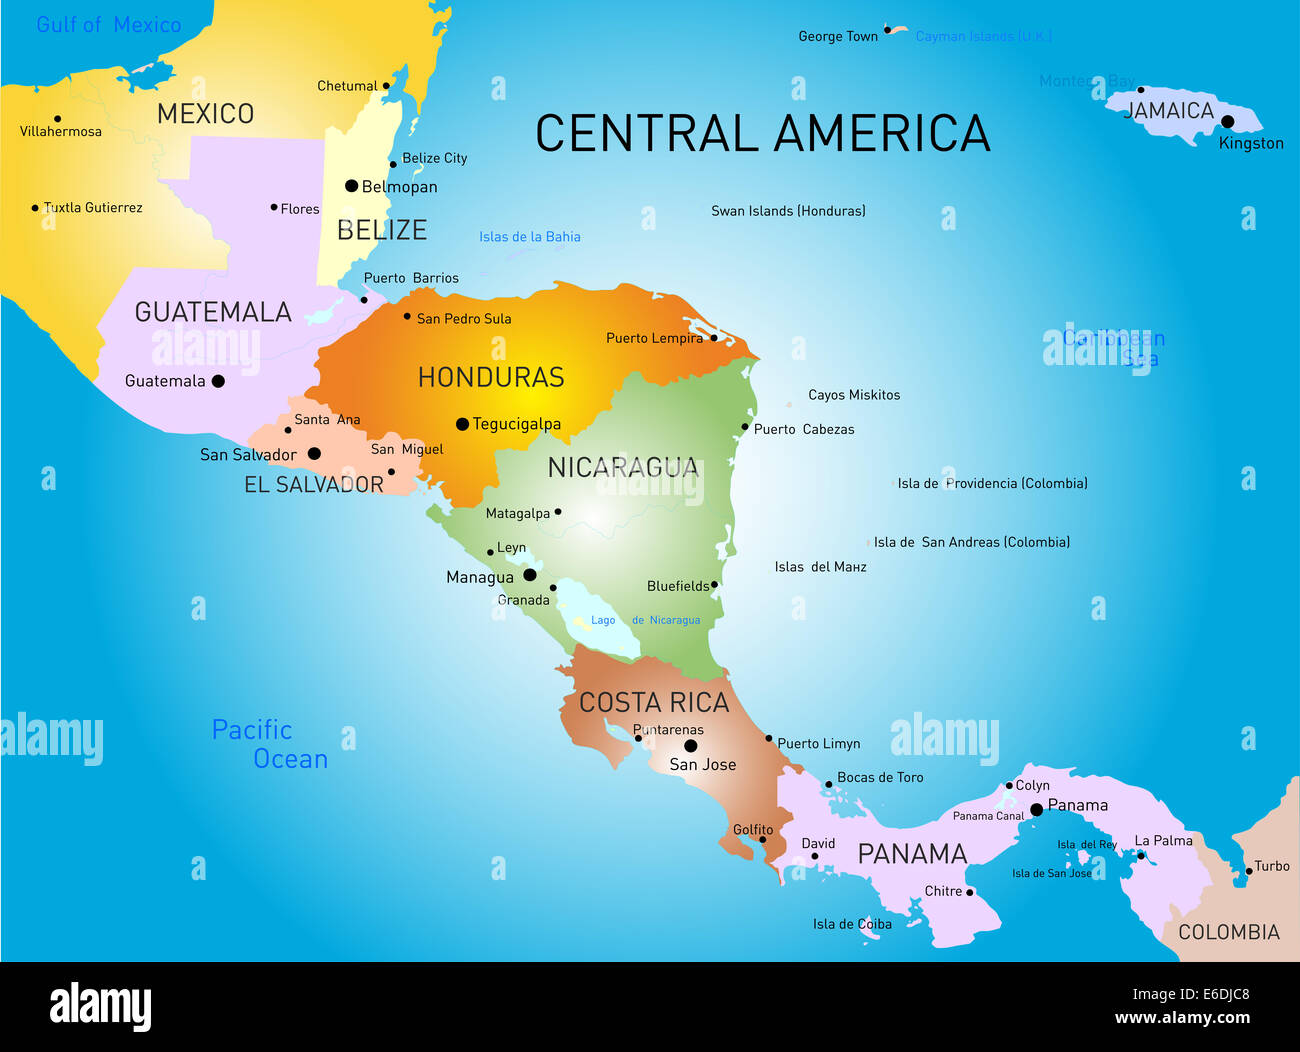 central america map Stock Photo 72829240 Alamy